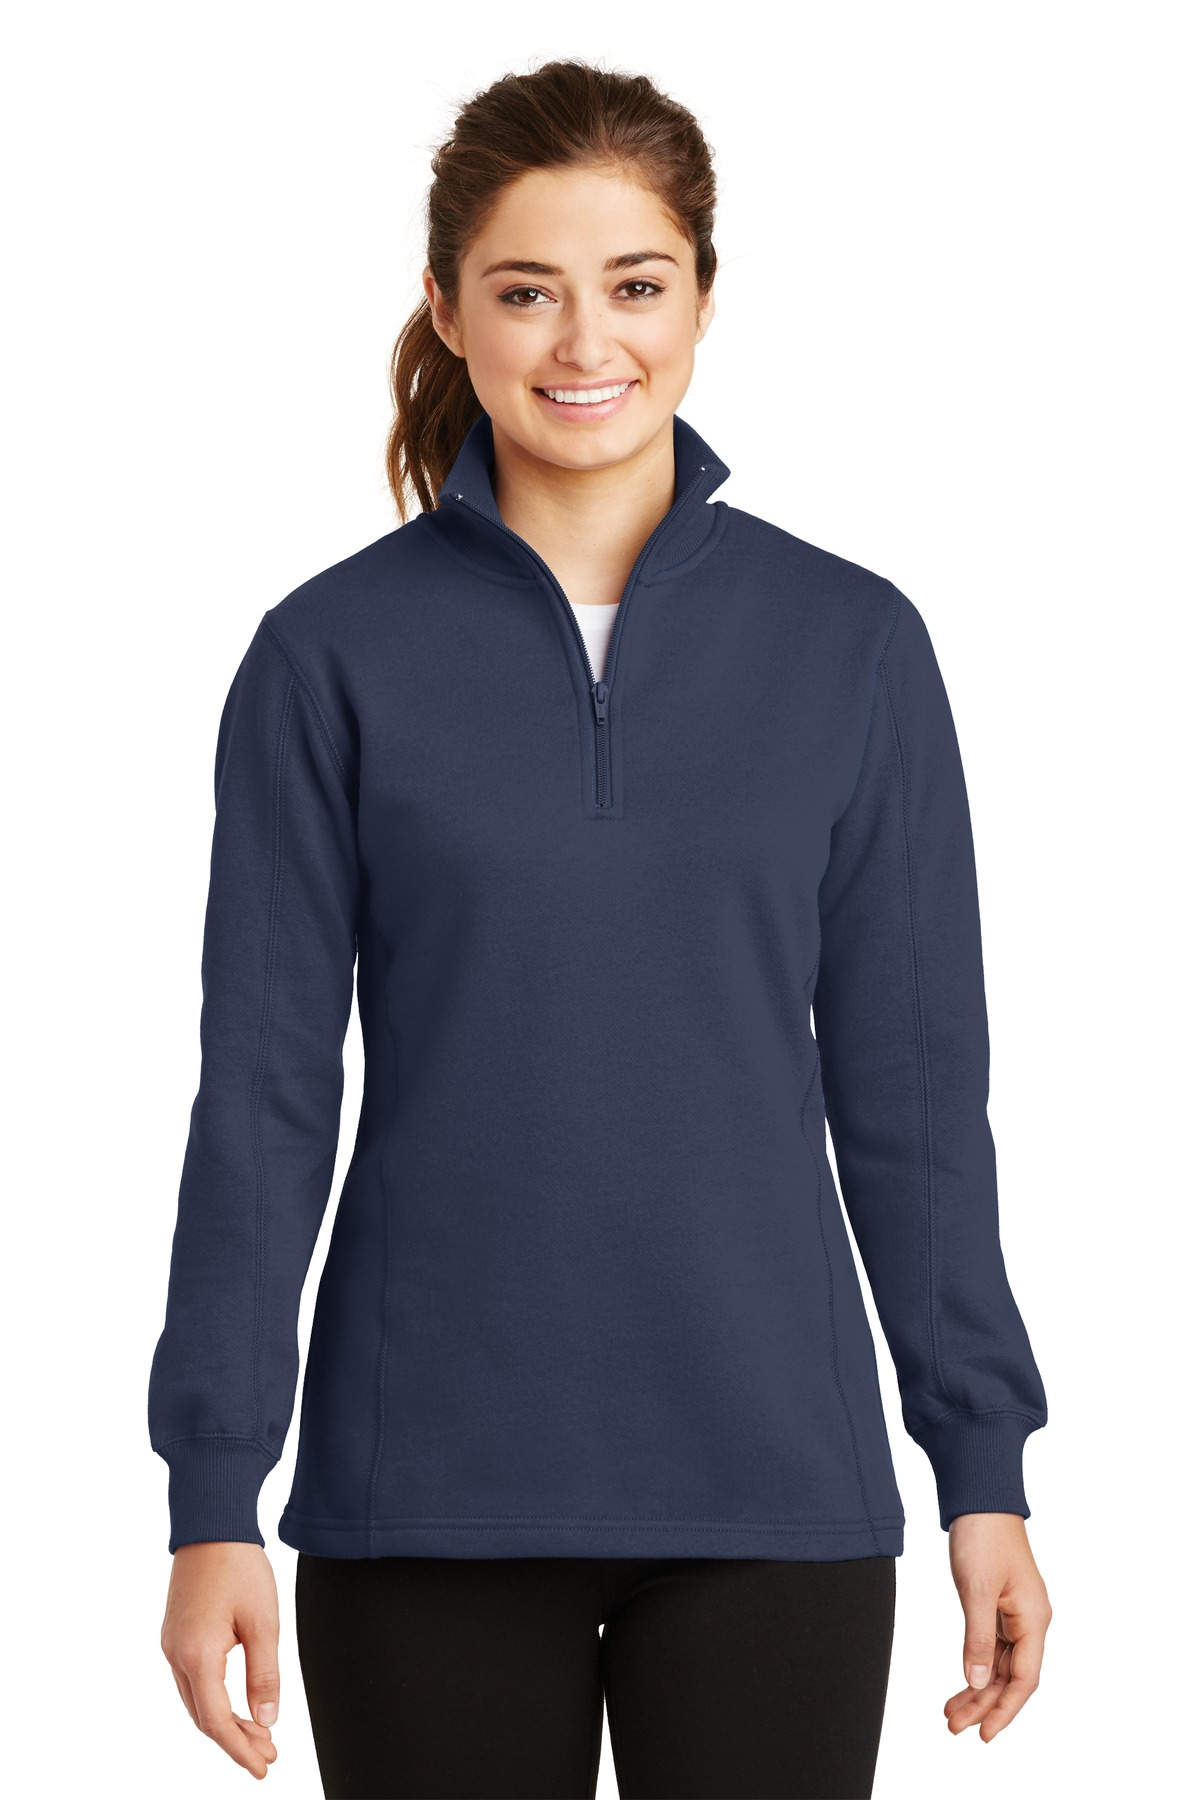 Sport-Tek ®  Ladies 1/4-Zip Sweatshirt. LST253 - True Navy